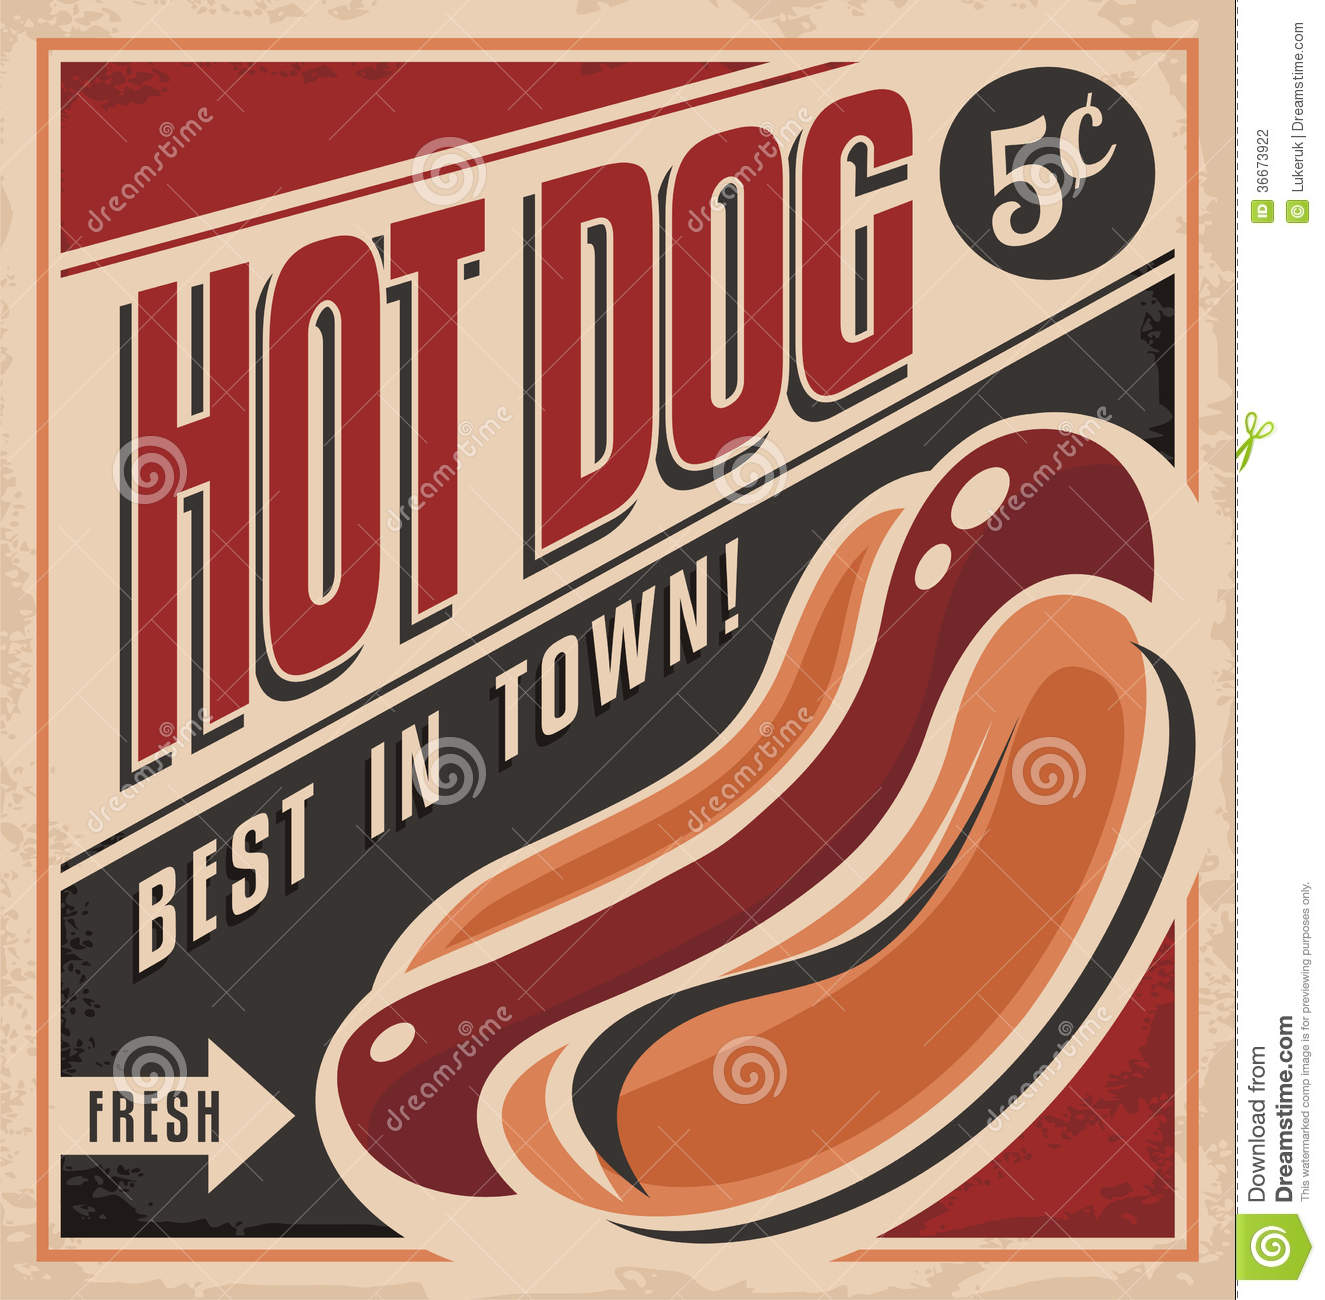 Best hot dogs in town, vintage flyer template on old paper texture ... Norman Reedus Jarah Mariano